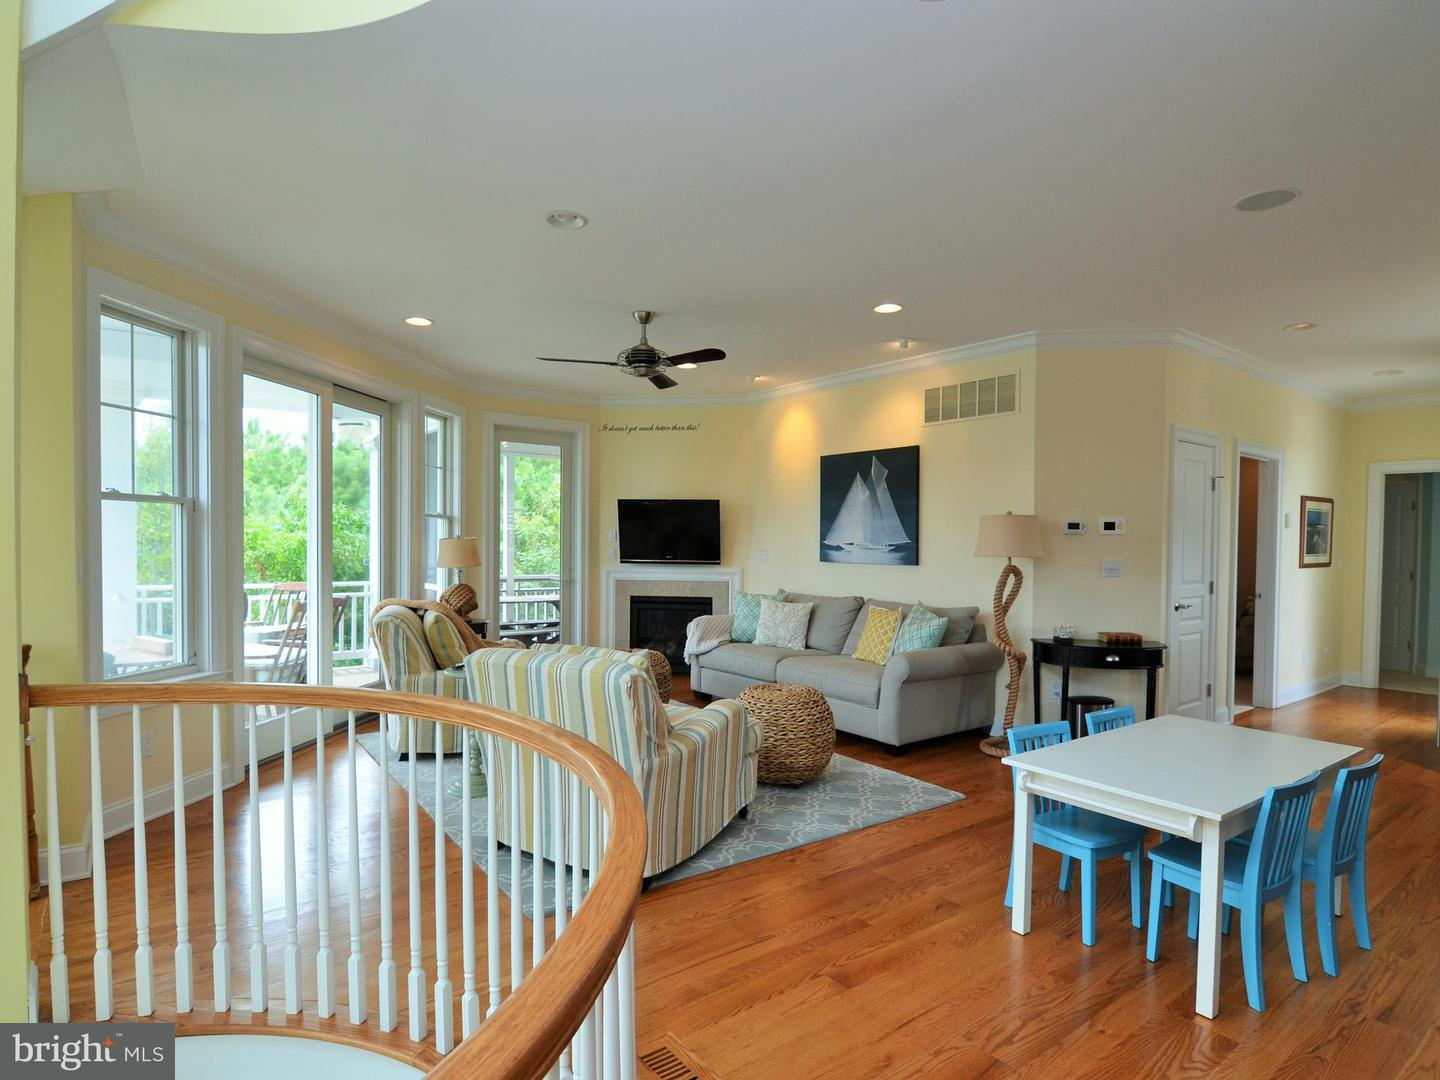 1002293530-300500808269-2018-09-25-15-08-25 31 Hall Ave | Rehoboth Beach, DE Real Estate For Sale | MLS# 1002293530  - 1st Choice Properties